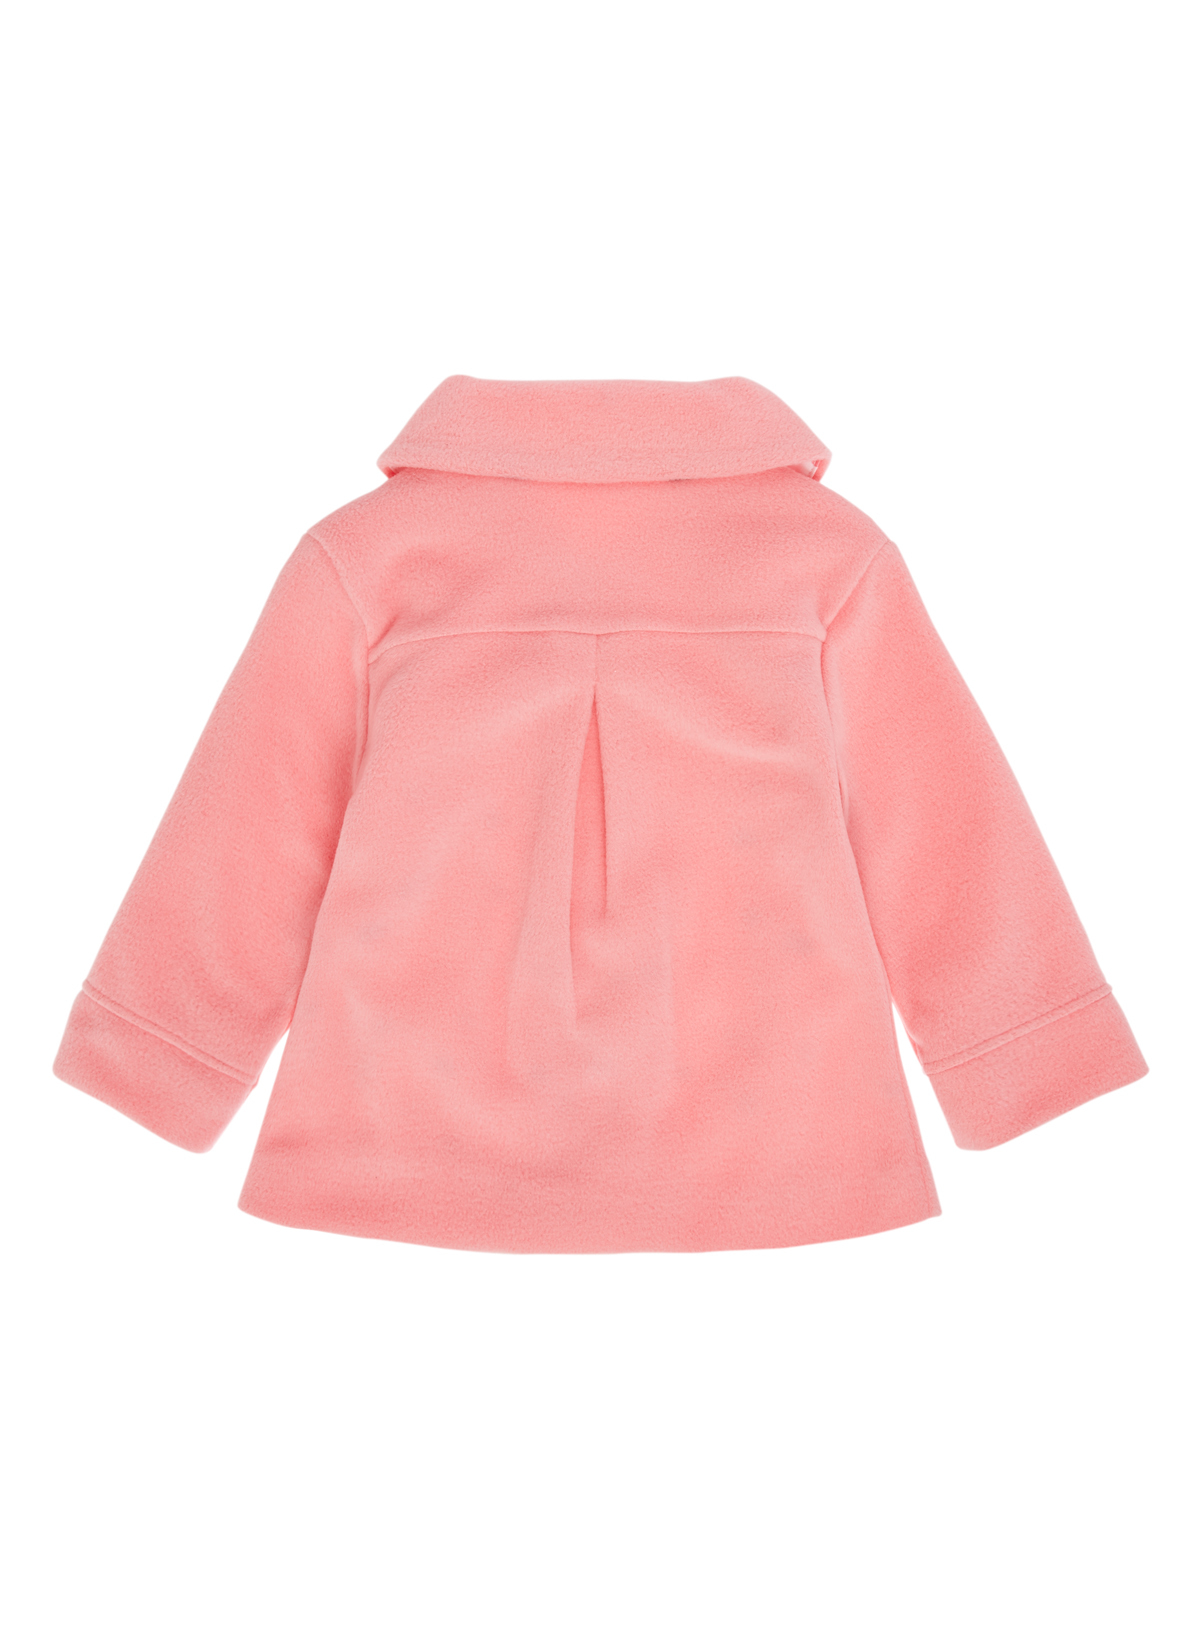 Baby Girls Pink Fleece Jacket (0-24 months) | Tu clothing